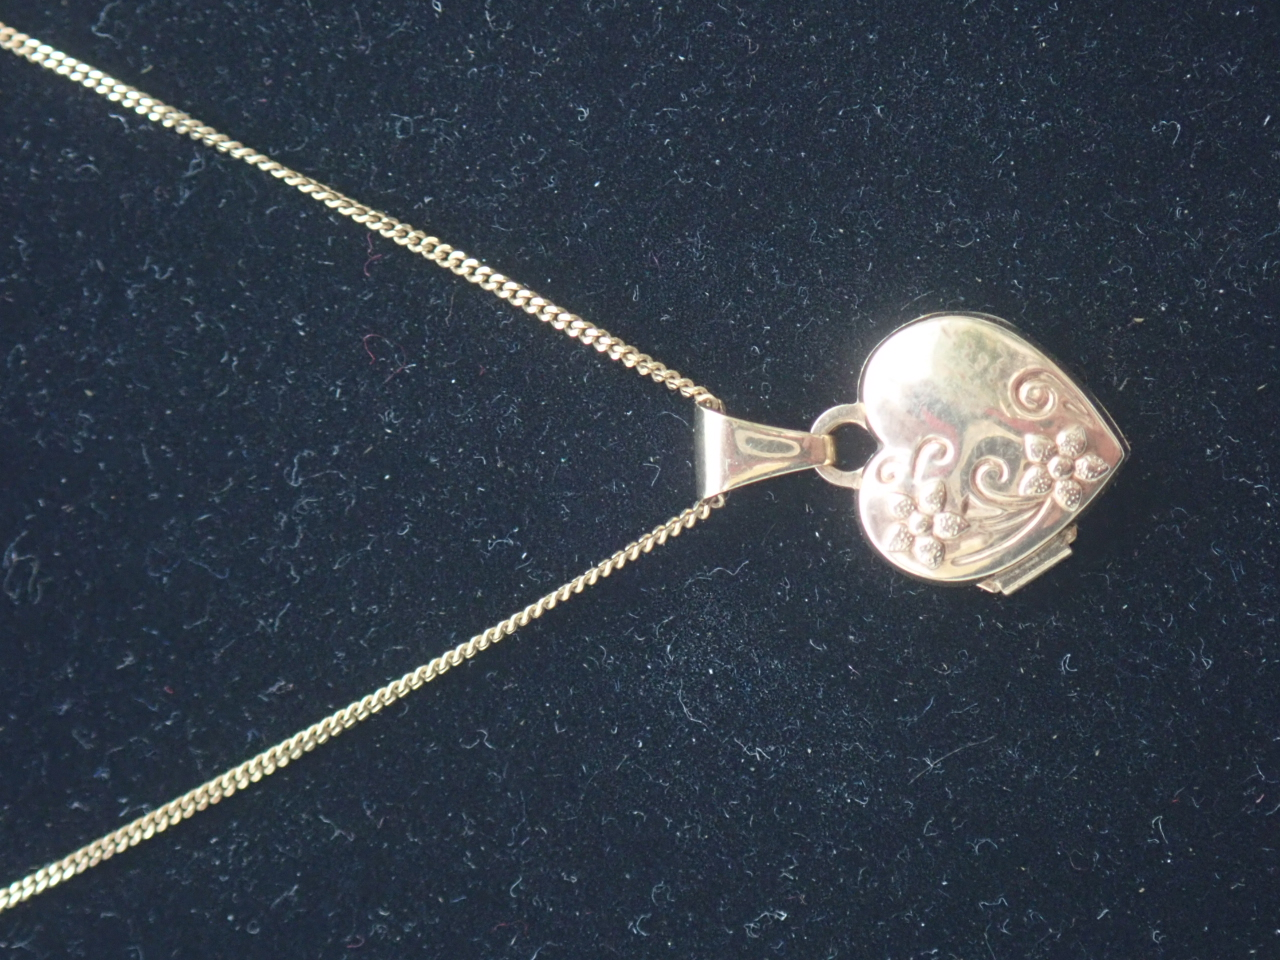 Sweetheart Floral Locket 9k Gold Pendant 18 inch chain- 1.8g